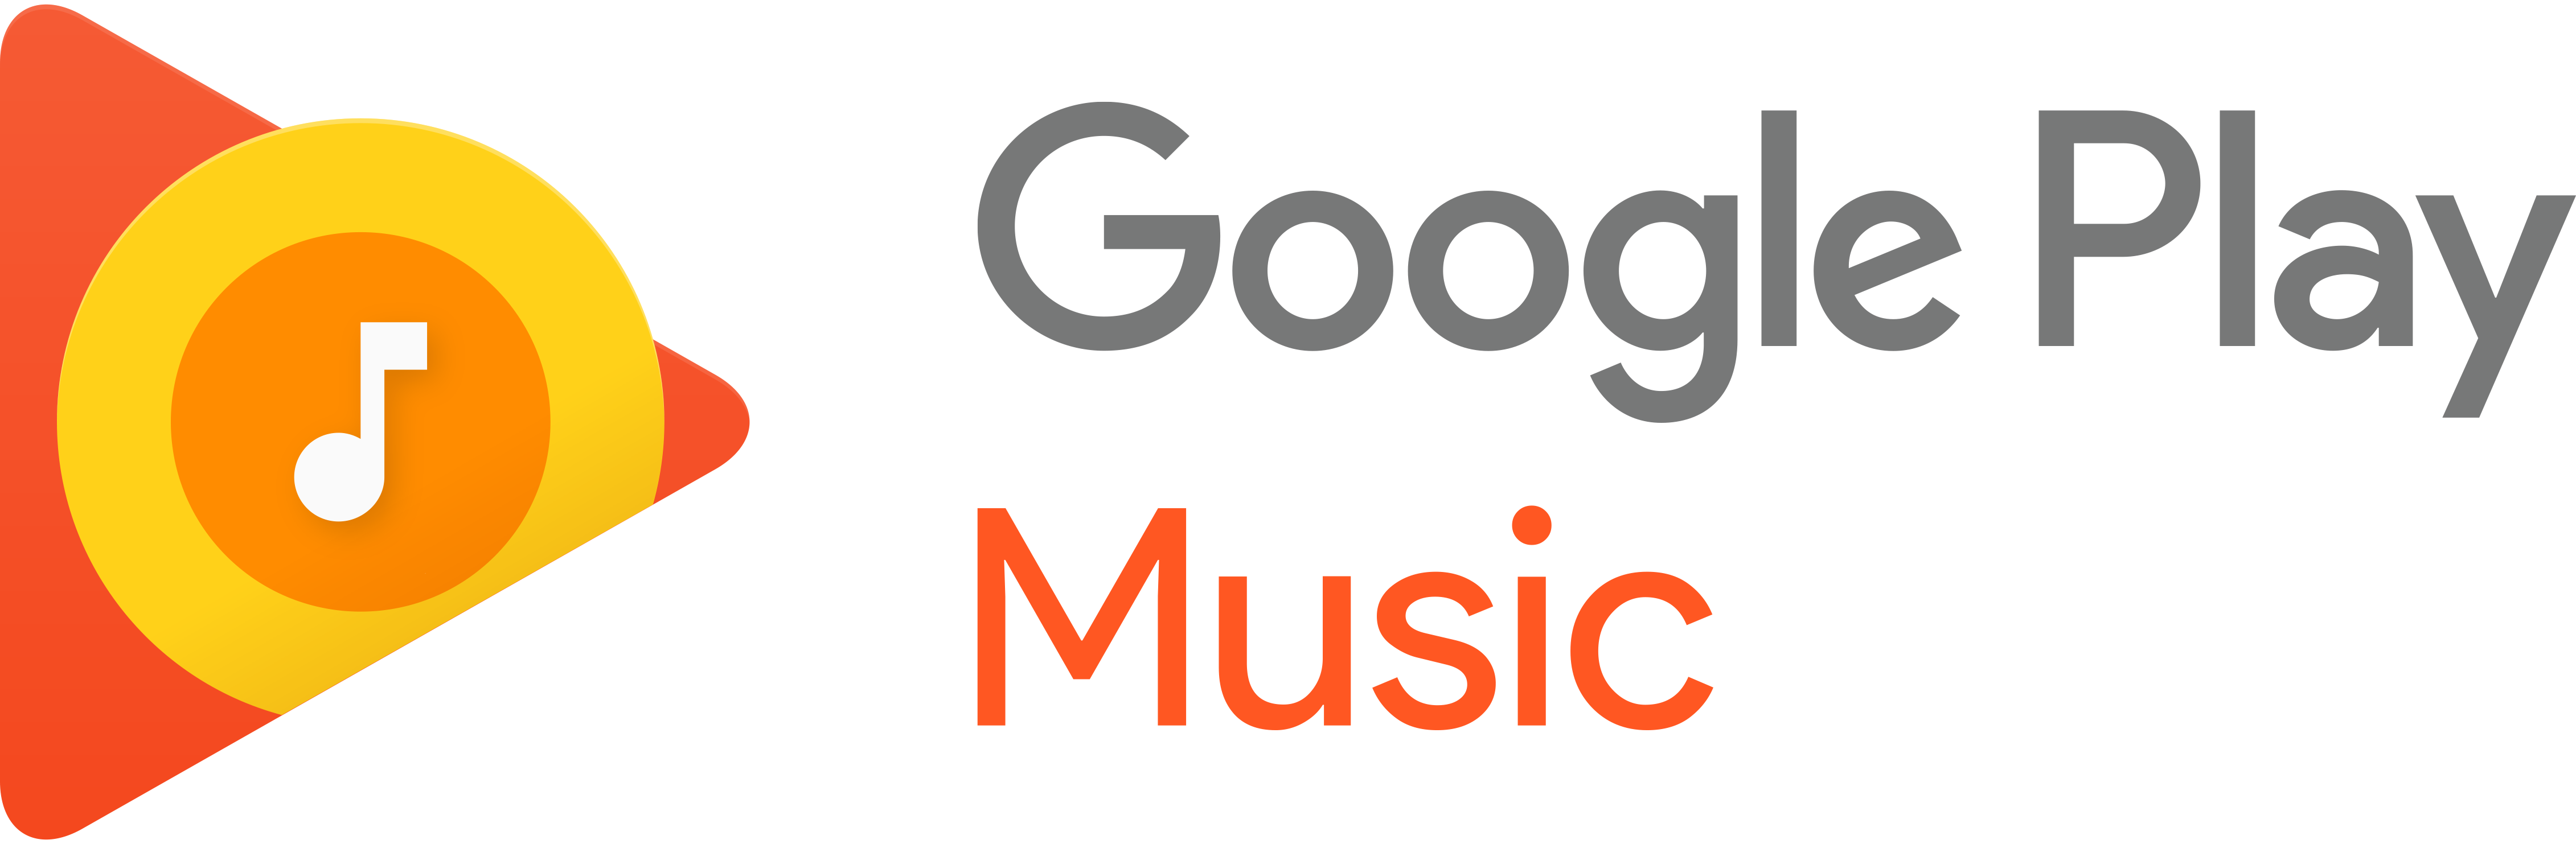 Alphabet Inc (GOOGL) Gets Serious About Music With 4-Month Trial Offer - Alphabet Inc PNG